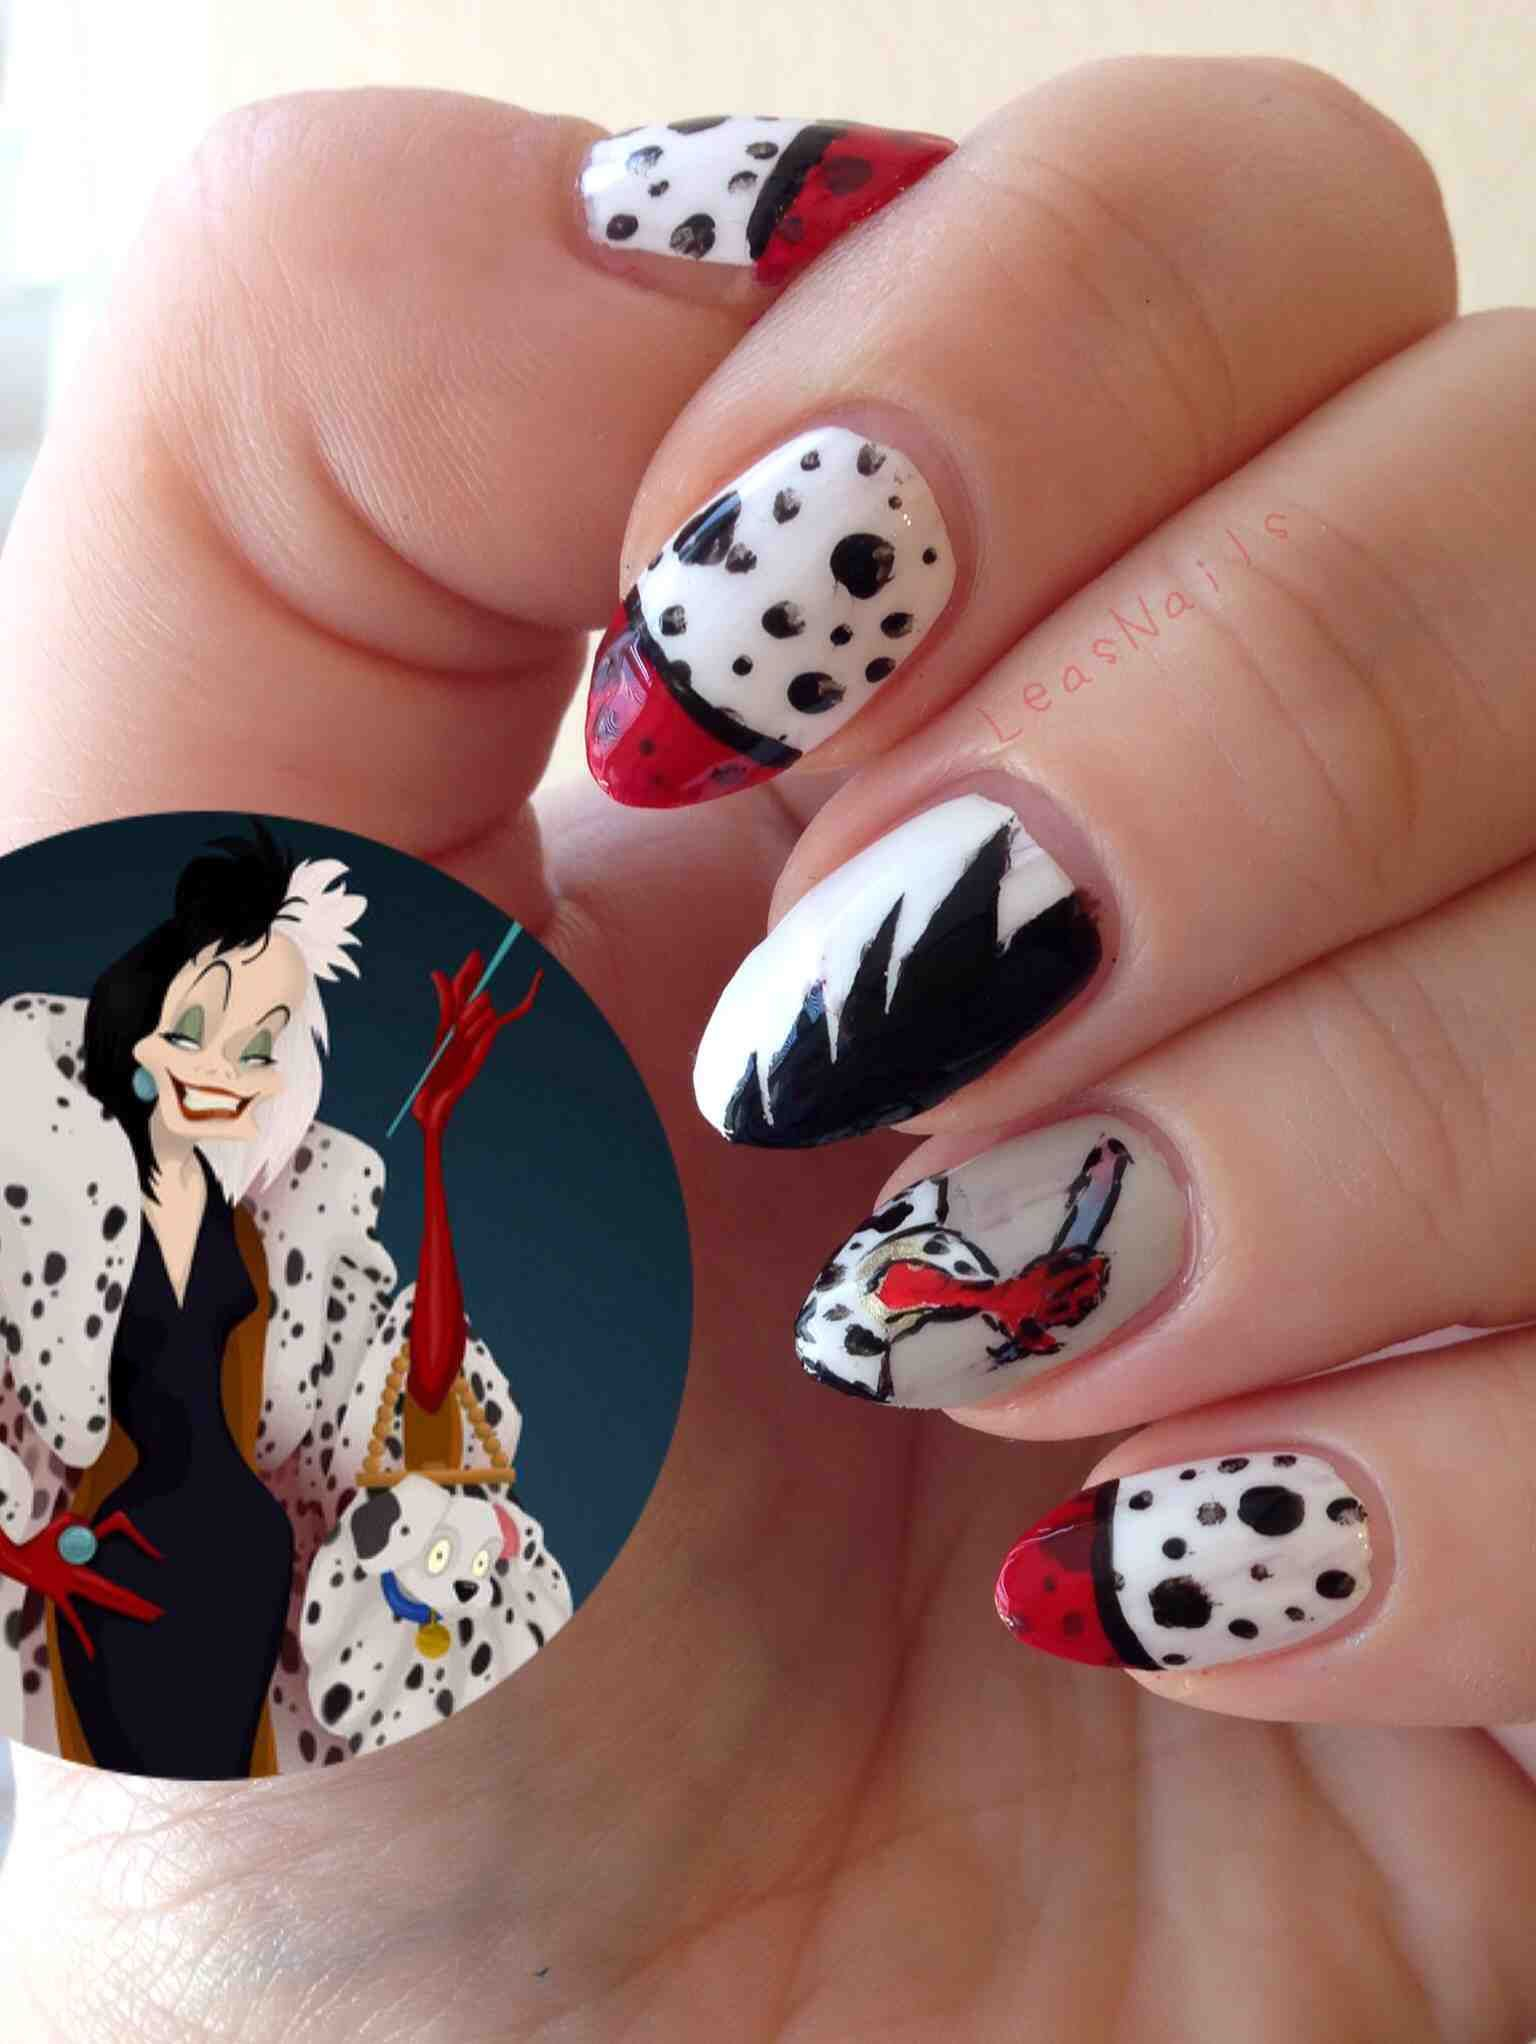 Cruella Deville inspired nails. I like the dalmatian patterned ones ...